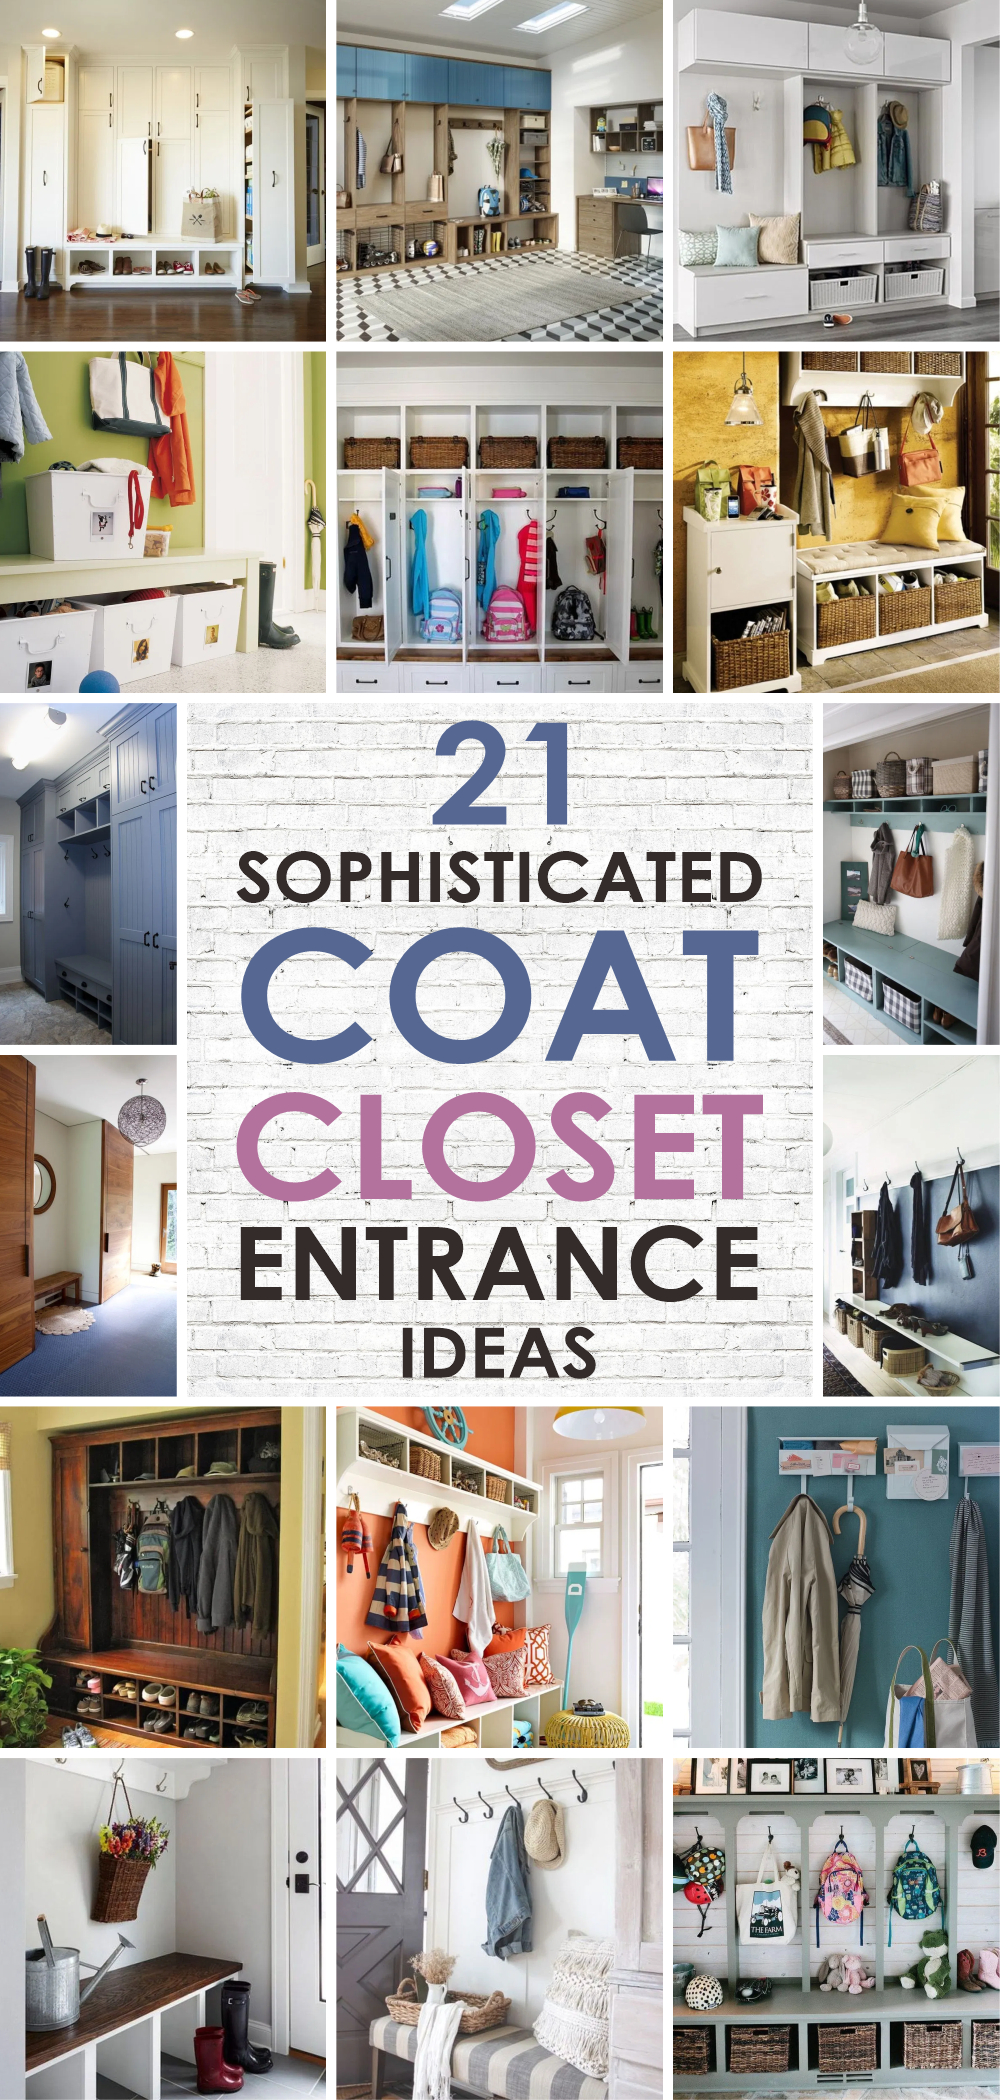 21 sophisticated coat closet entrance ideas 1